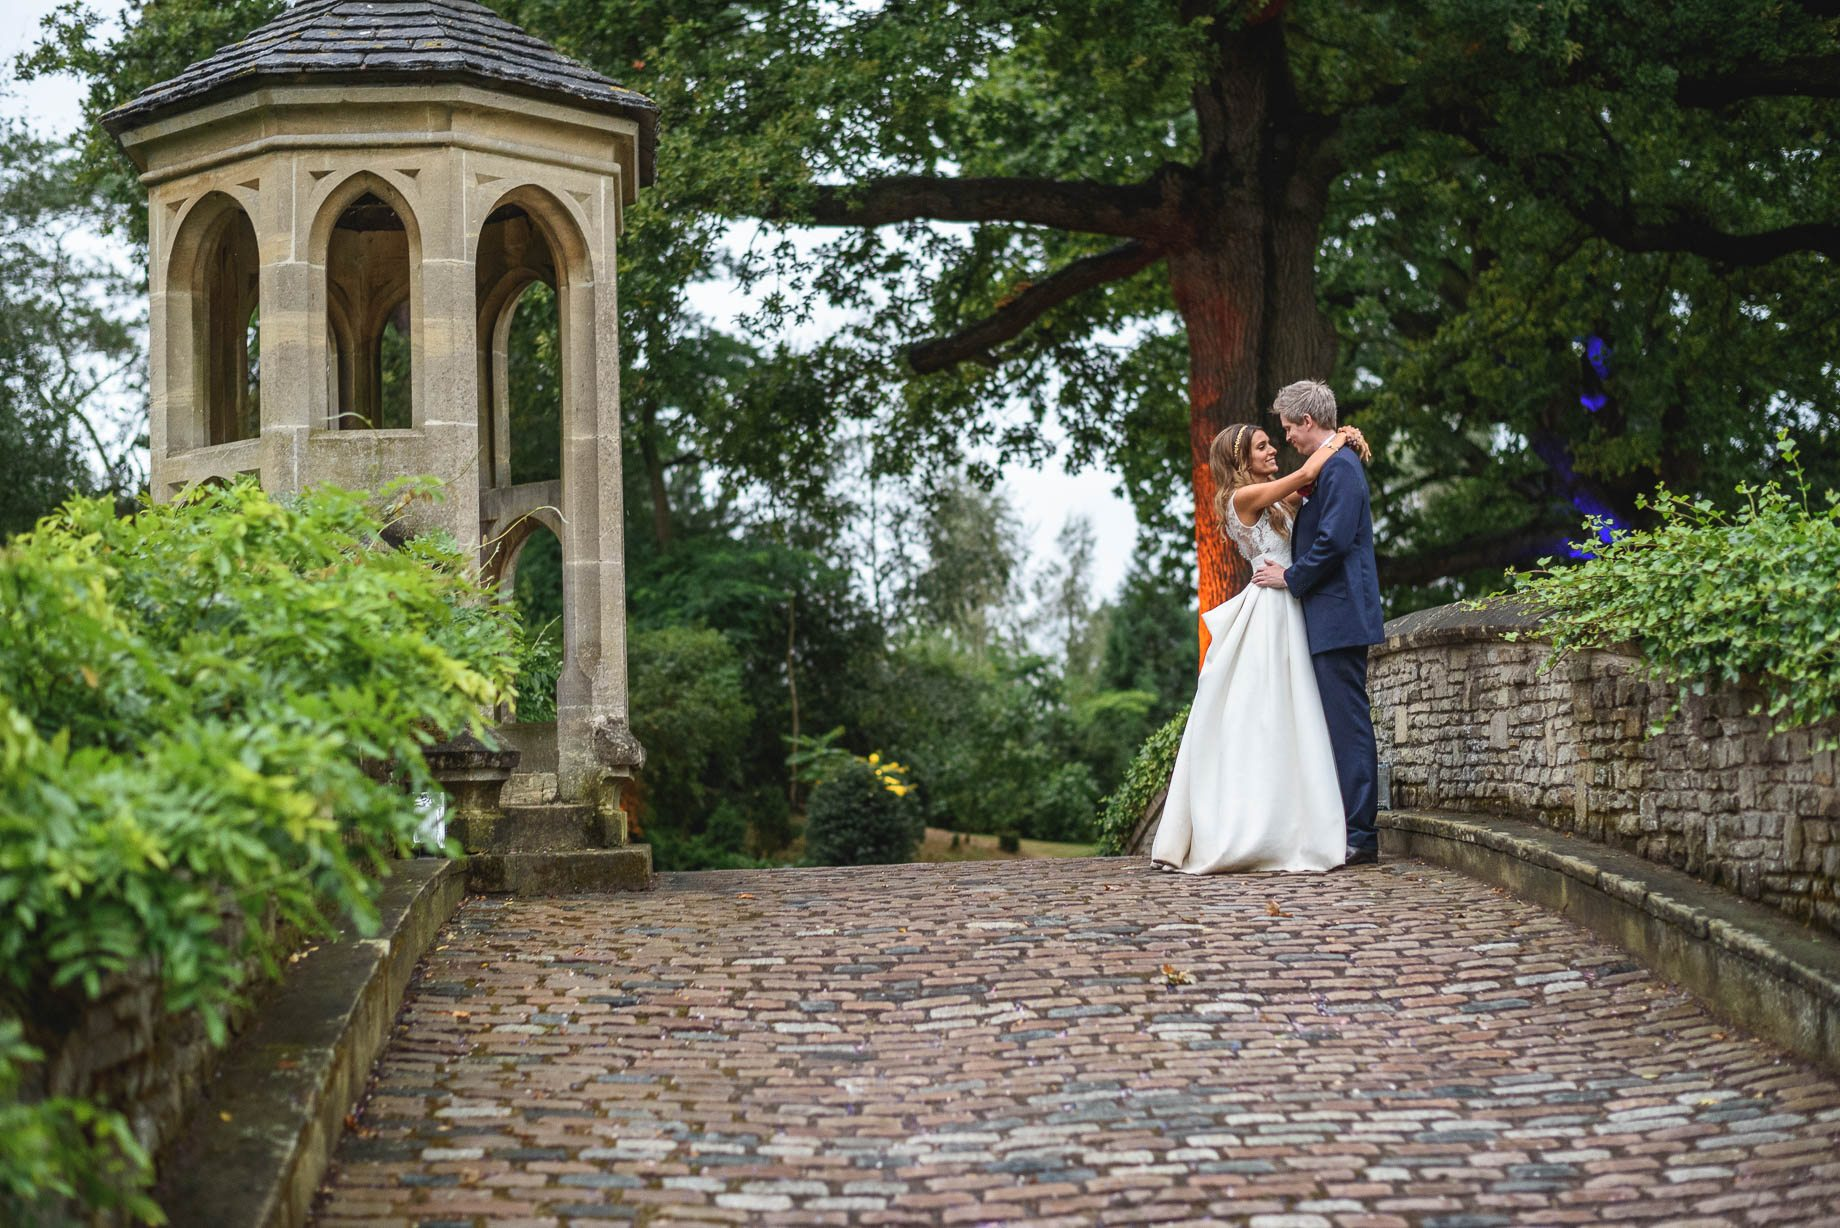 surrey-wedding-photography-guy-collier-photography-claire-and-tom-189-of-227